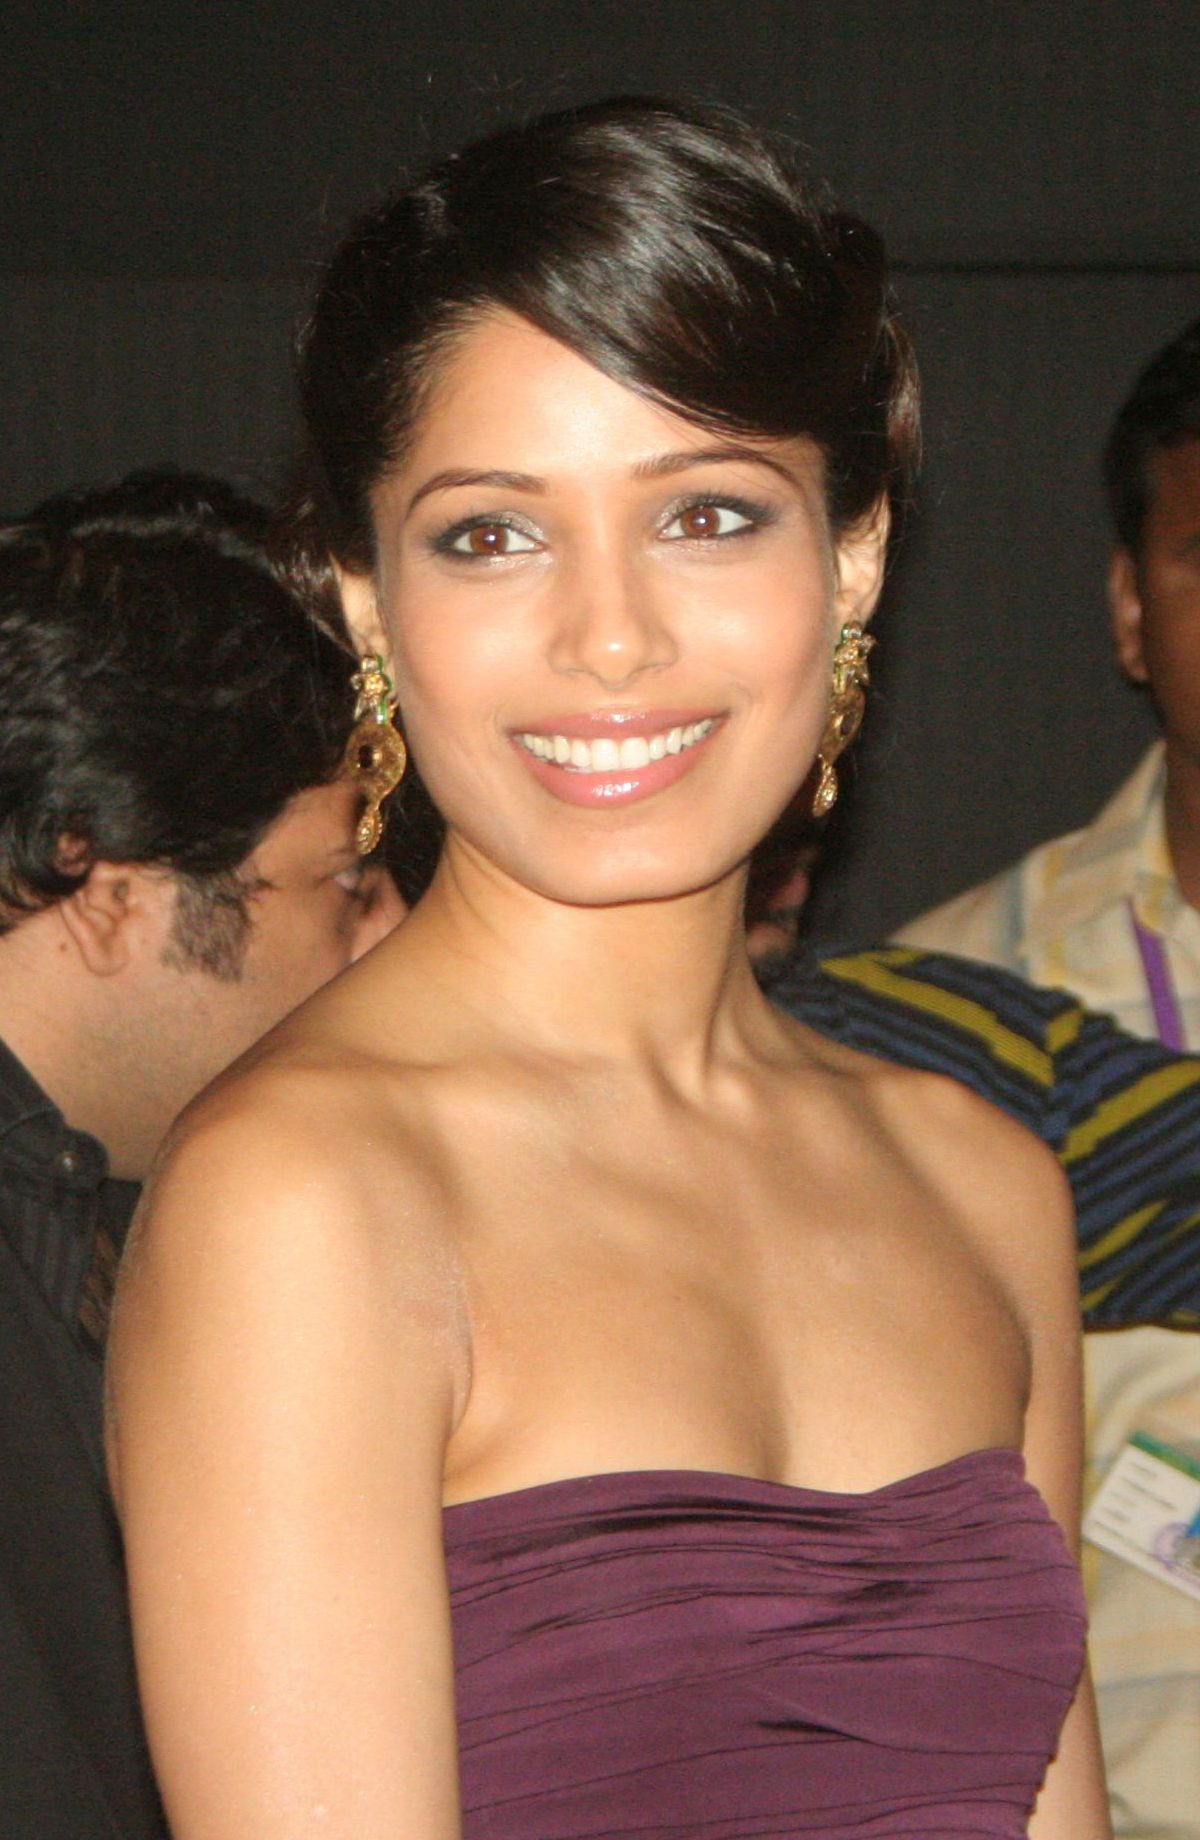 Freida Pinto earned a  million dollar salary, leaving the net worth at 8 million in 2017